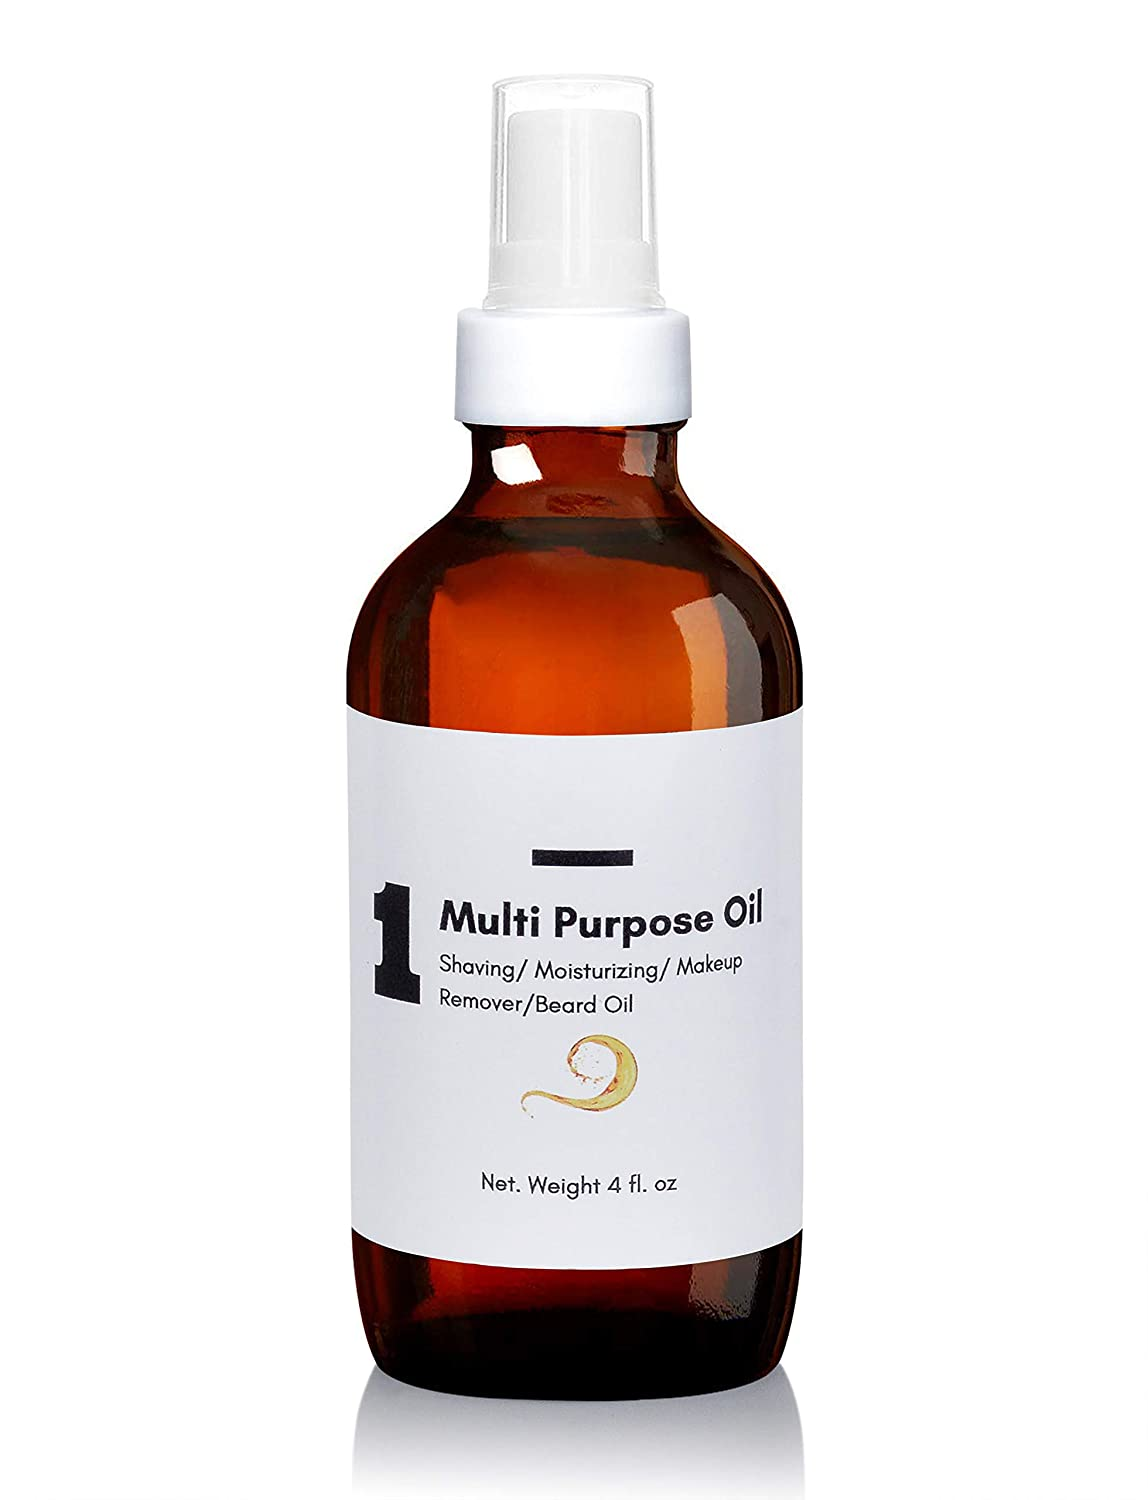 Multiuse Dry Body Oil - 4 oz- Makeup Remover, Baby oil, Cleansing Oil, Hair & skincare oil. Carrier oils: MCT, Almond, Avocado,Vitamin E, Prickly Pear oil. For stretch marks & scars